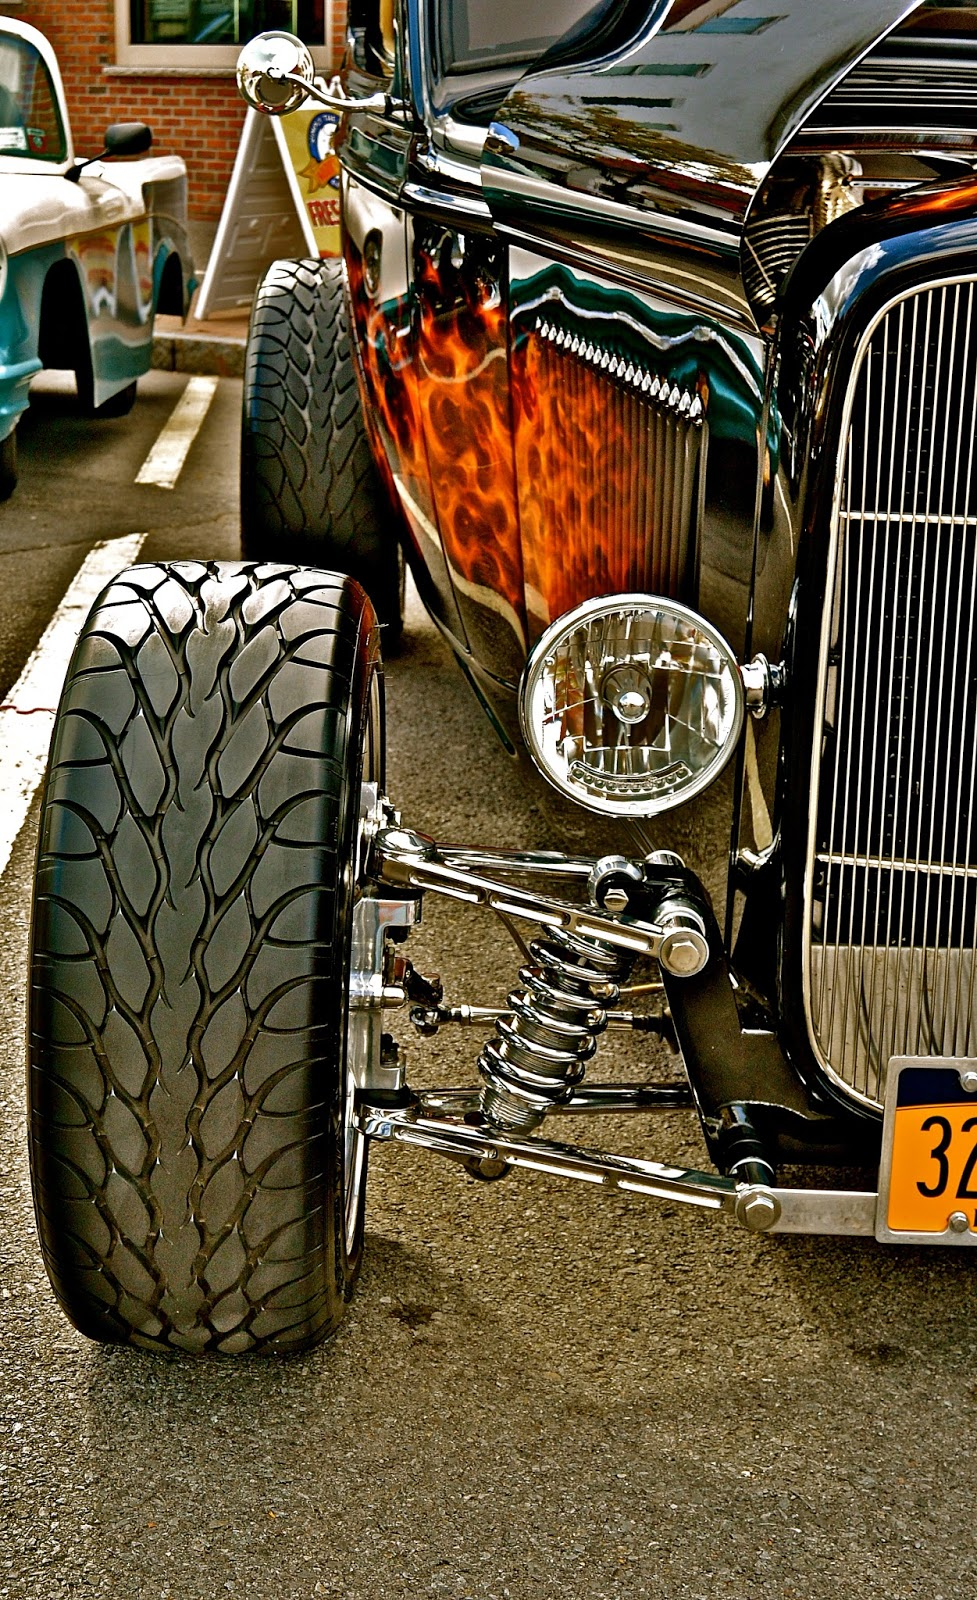 32 Ford \'Deuse\' Coupe. | Tom The Backroads Traveller